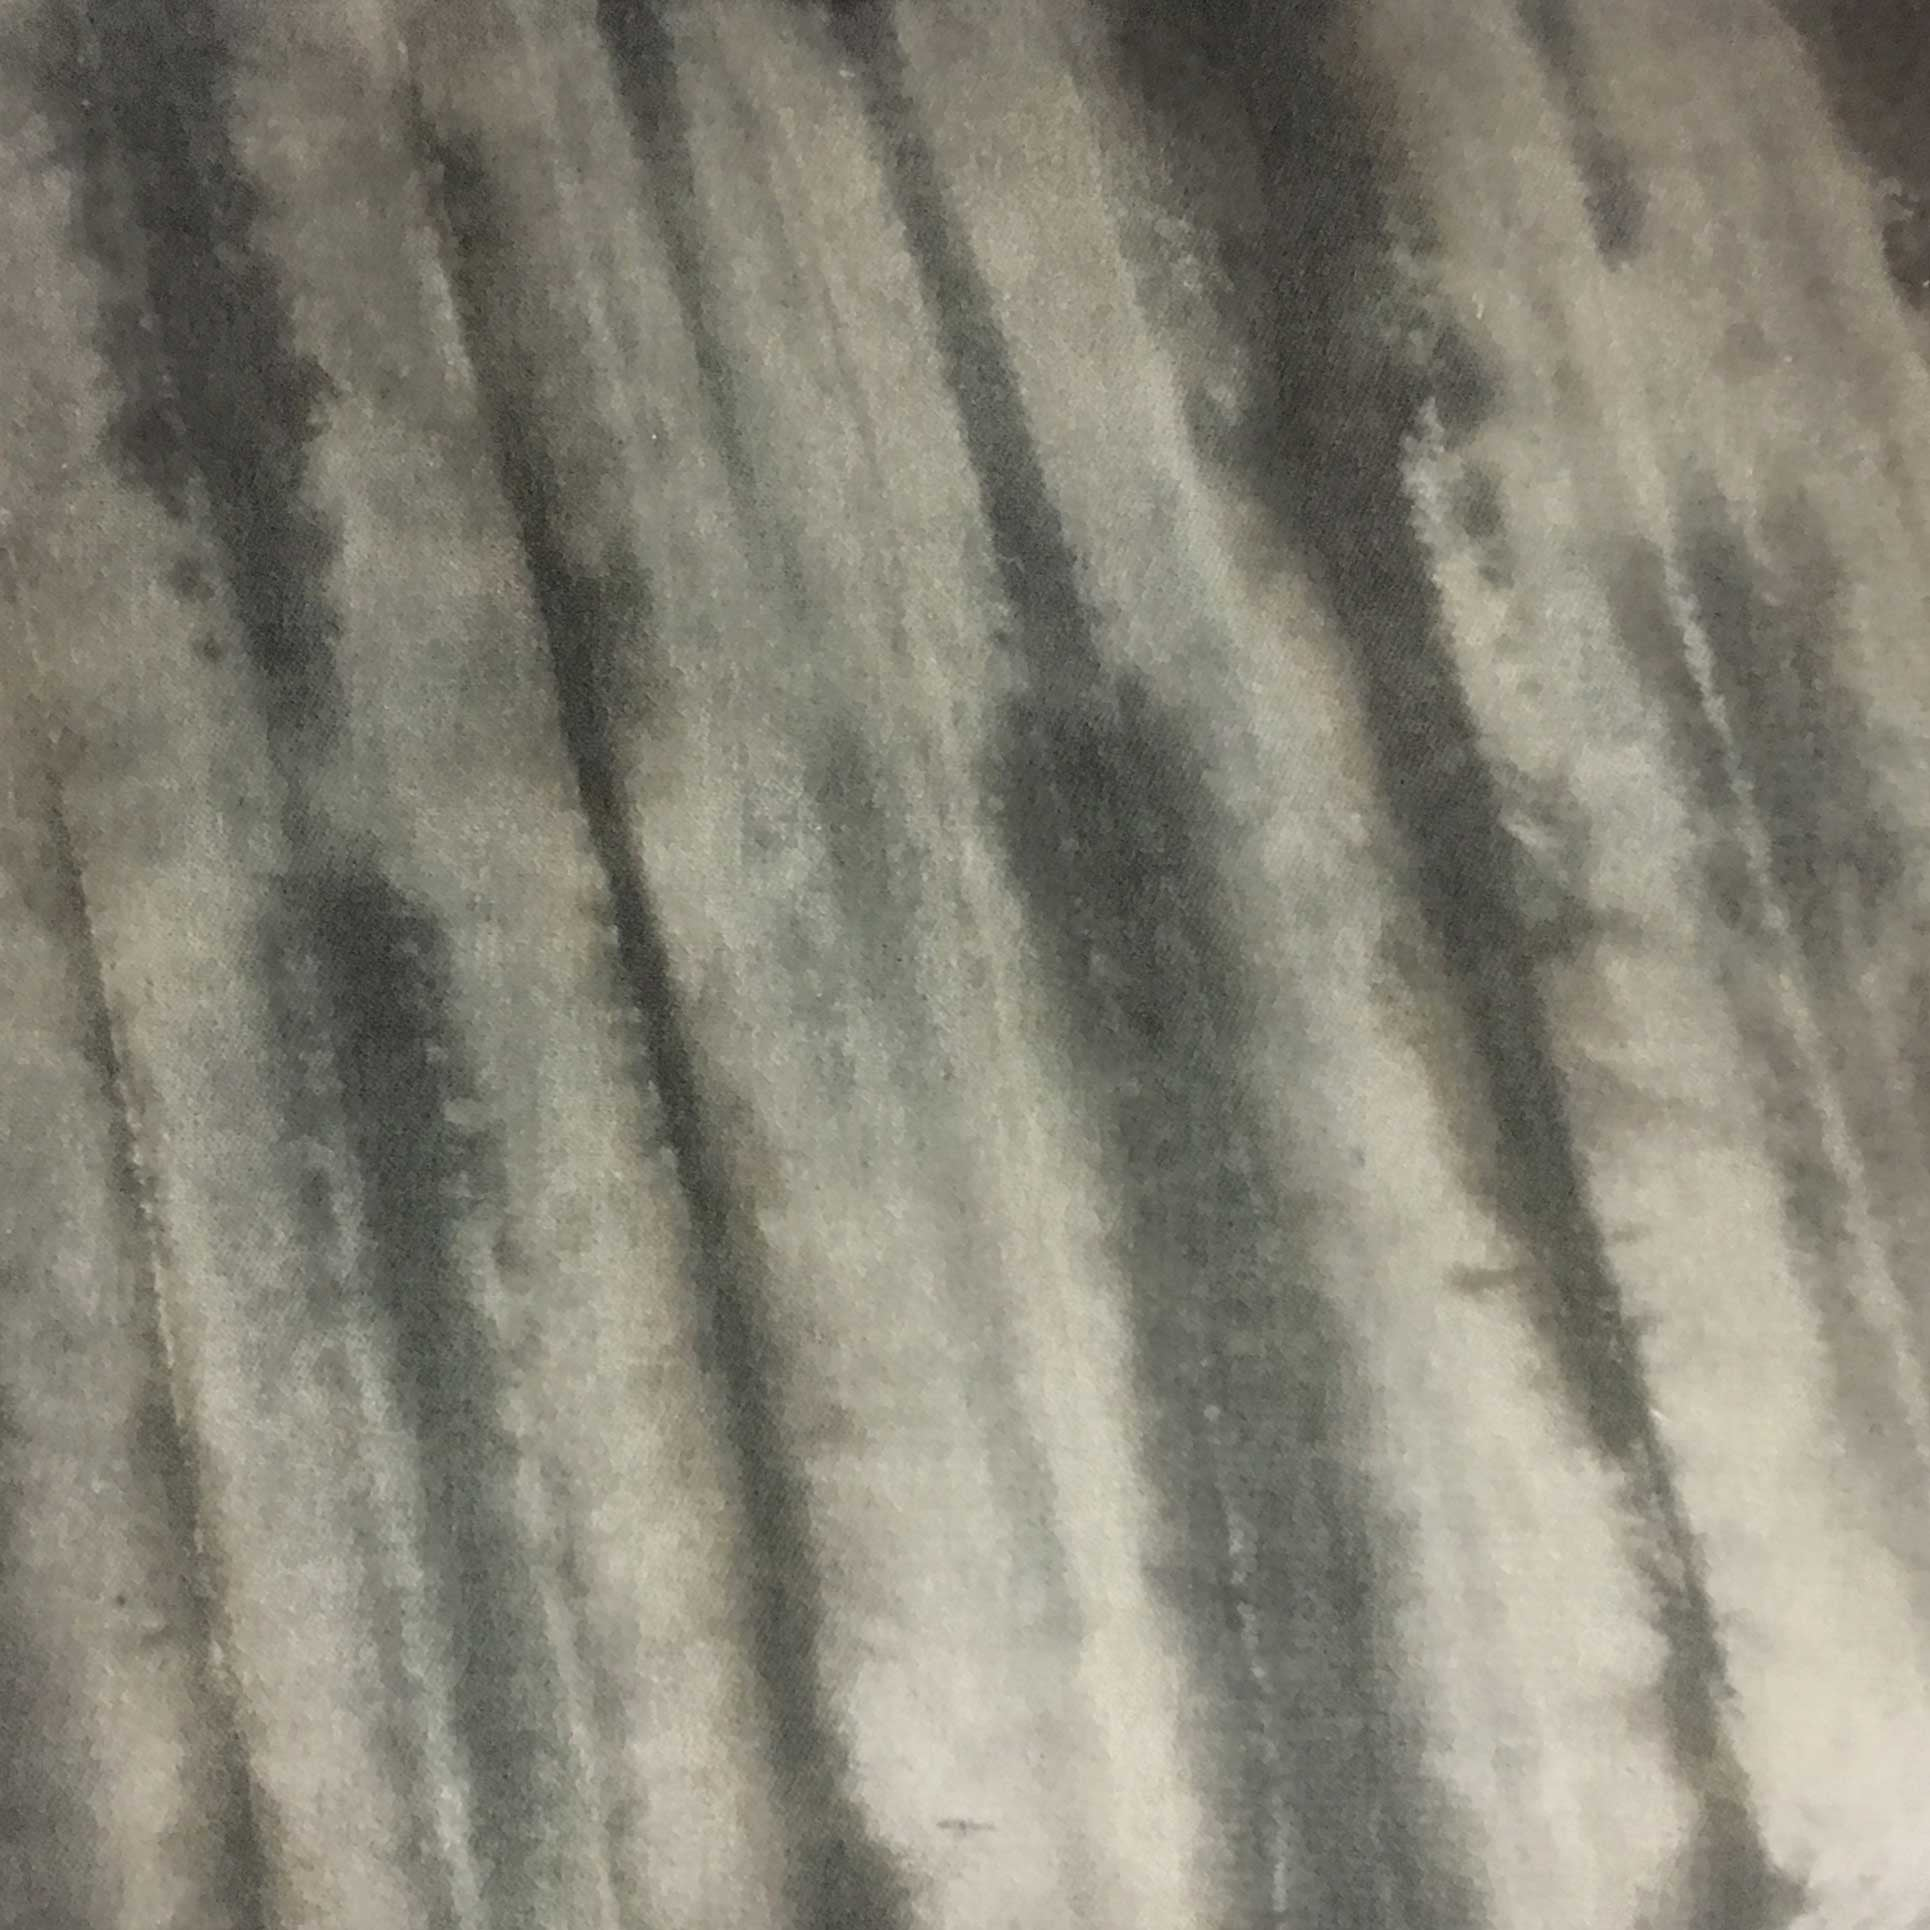 Groovy Tie Dye Velvet Upholstery Fabric By The Yard 10 Colors